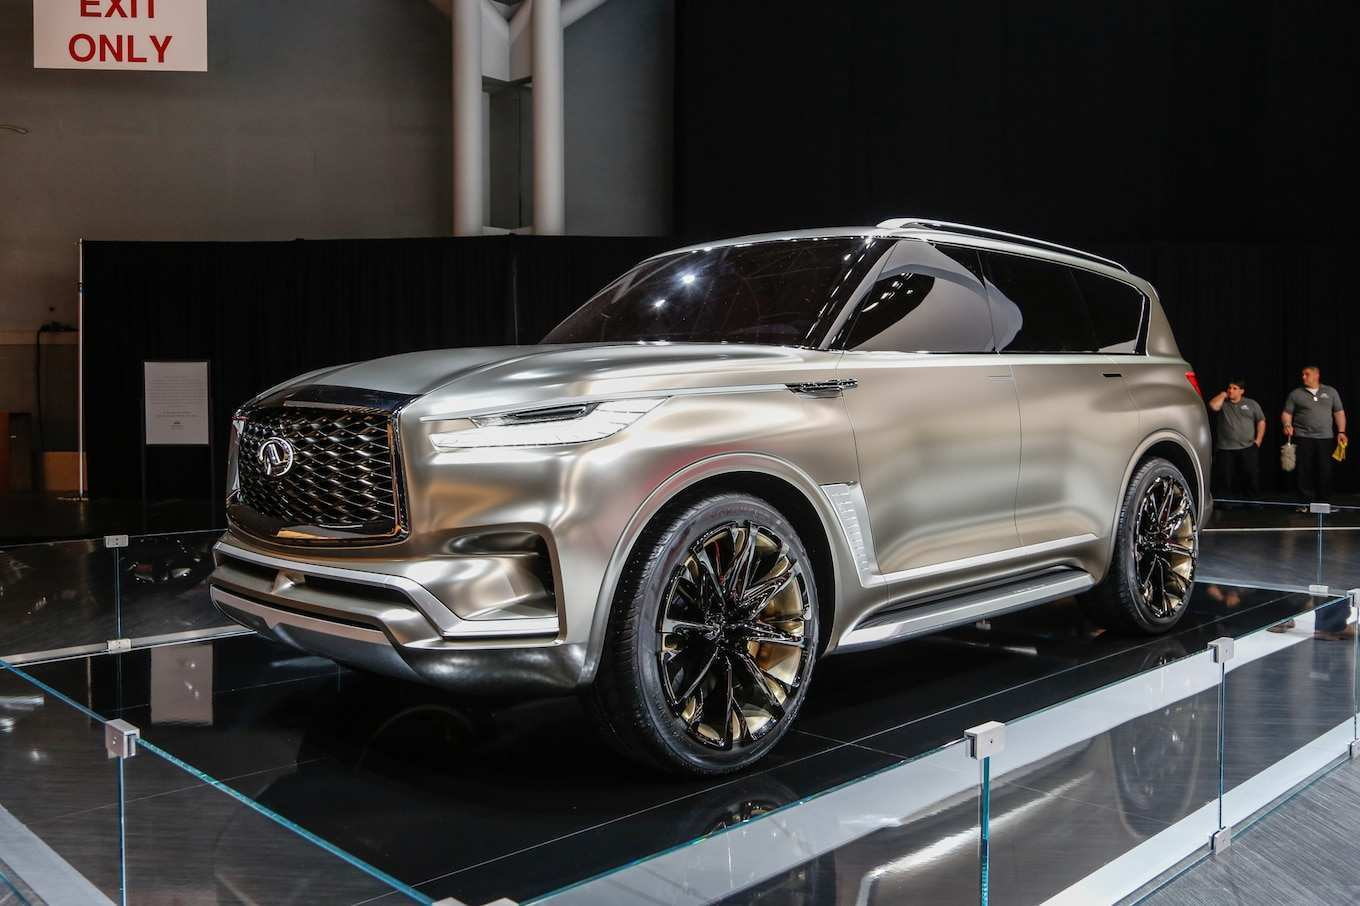 44 Great 2020 Infiniti QX80 Concept with 2020 Infiniti QX80